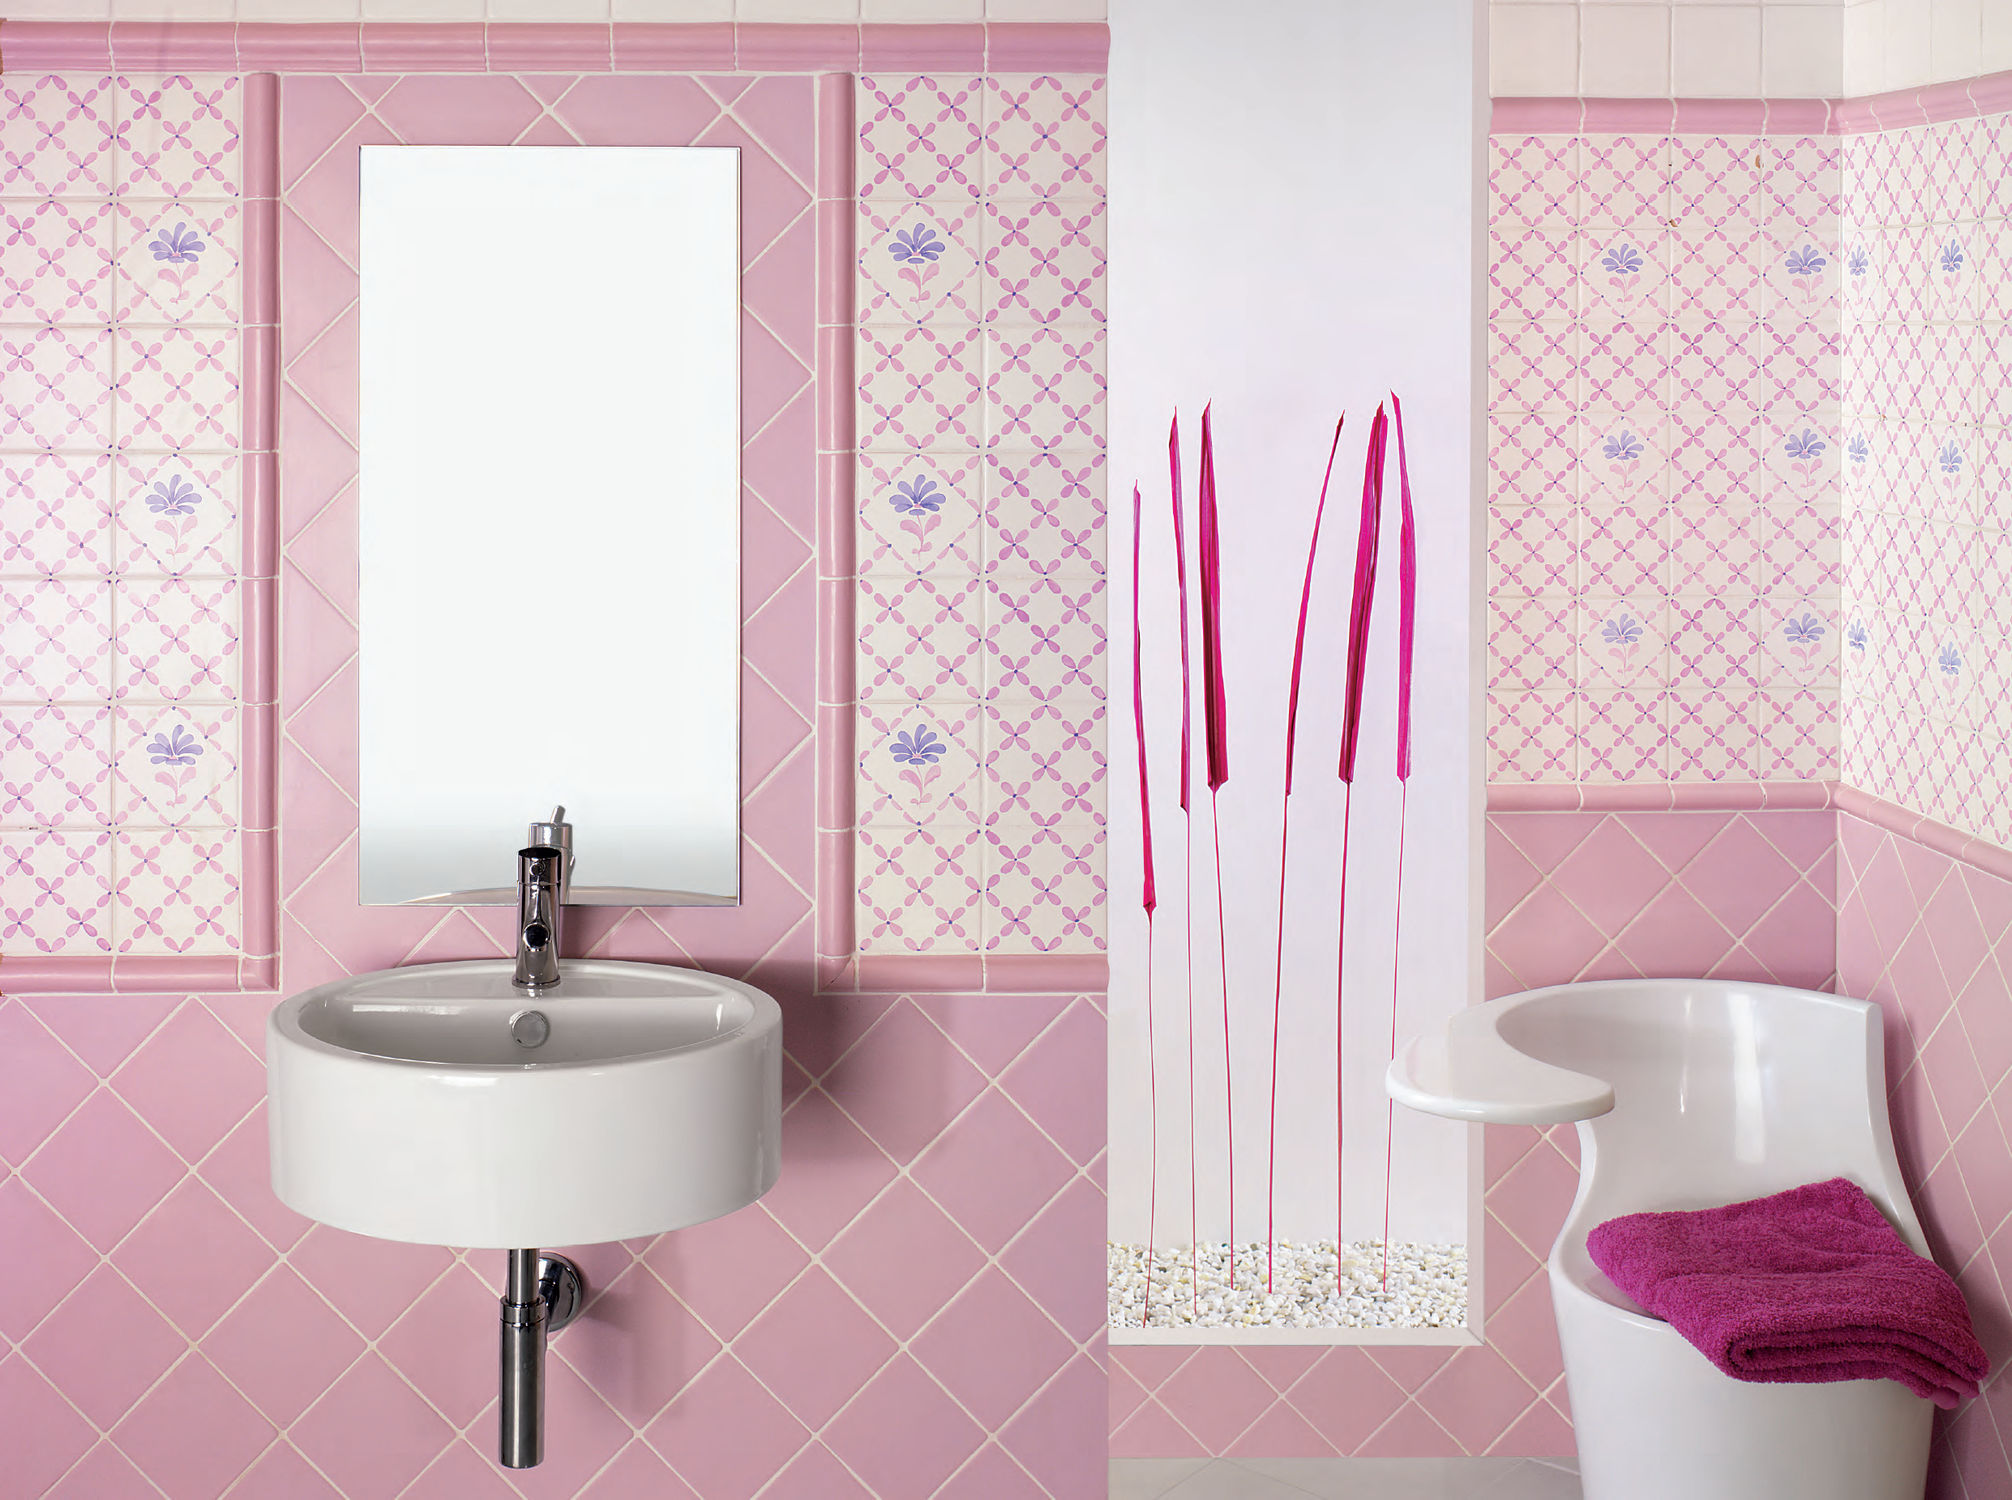 bathroom-beautiful-interior-designs-pink-ceramic-tile-470619